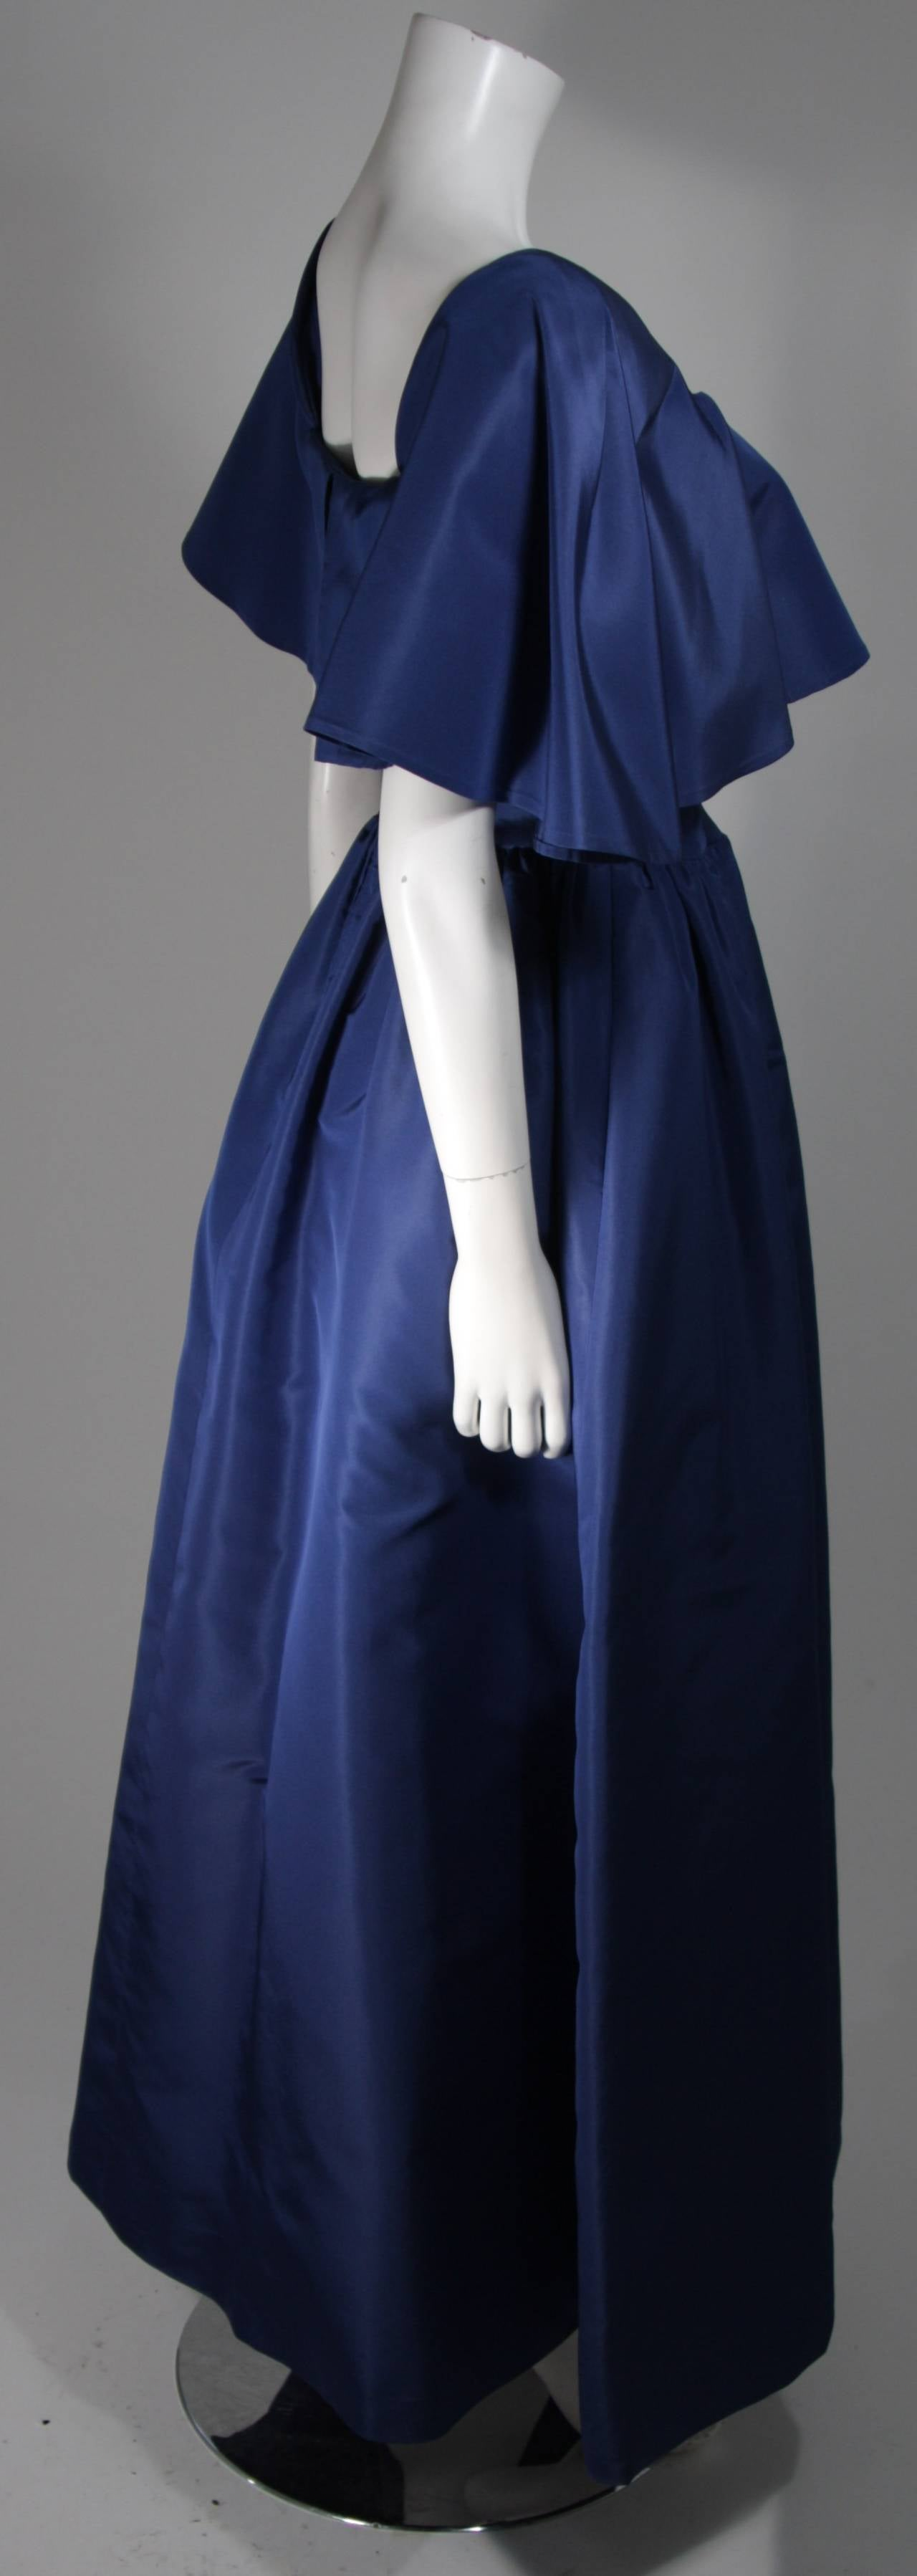 Circa 1980s Pauline Trigere Midnight Blue Faille Ball Gown with Cape Collar 6 5